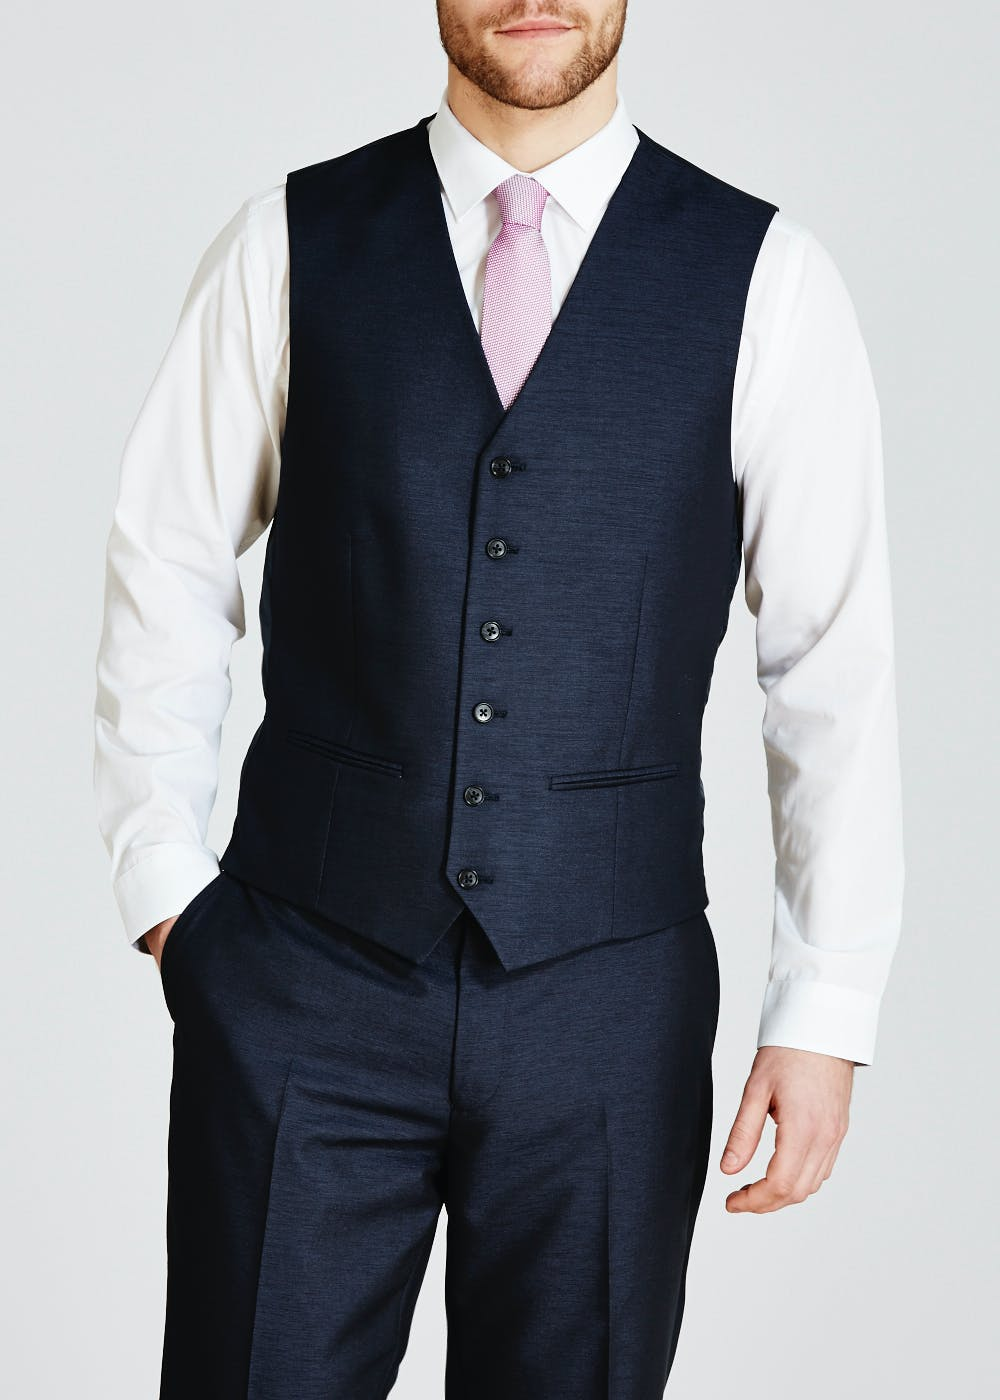 prom suits for boys - jackets, ties & bow ties – matalan